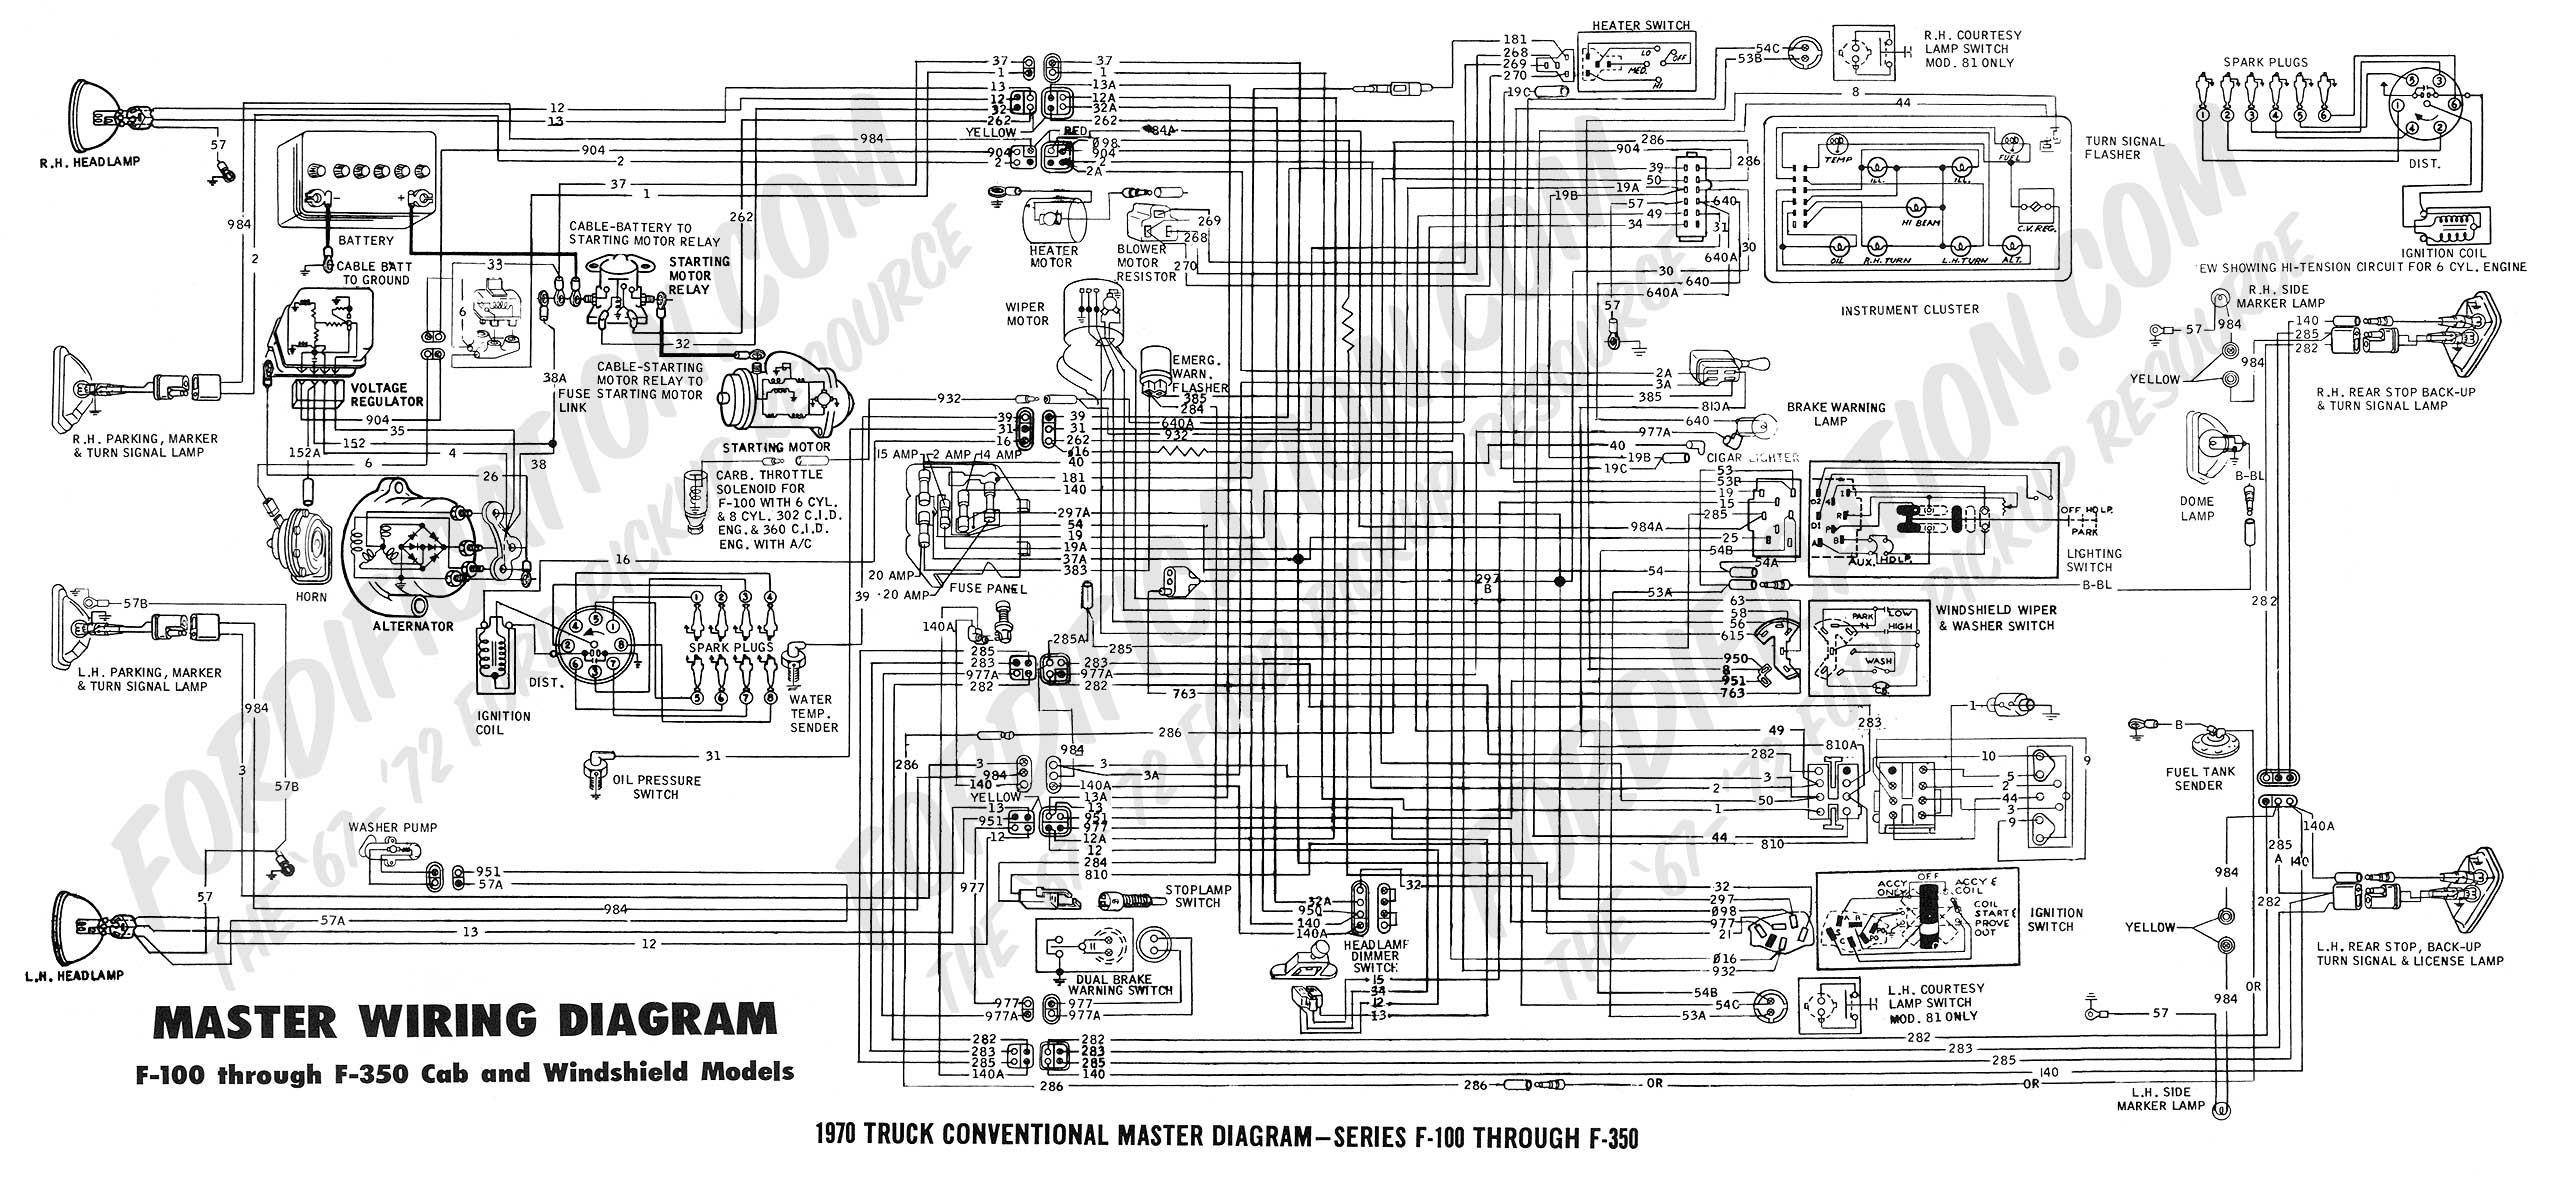 wiring diagram 70_master ford truck technical drawings and schematics section h wiring 2000 ford e 250 wiring diagrams at alyssarenee.co